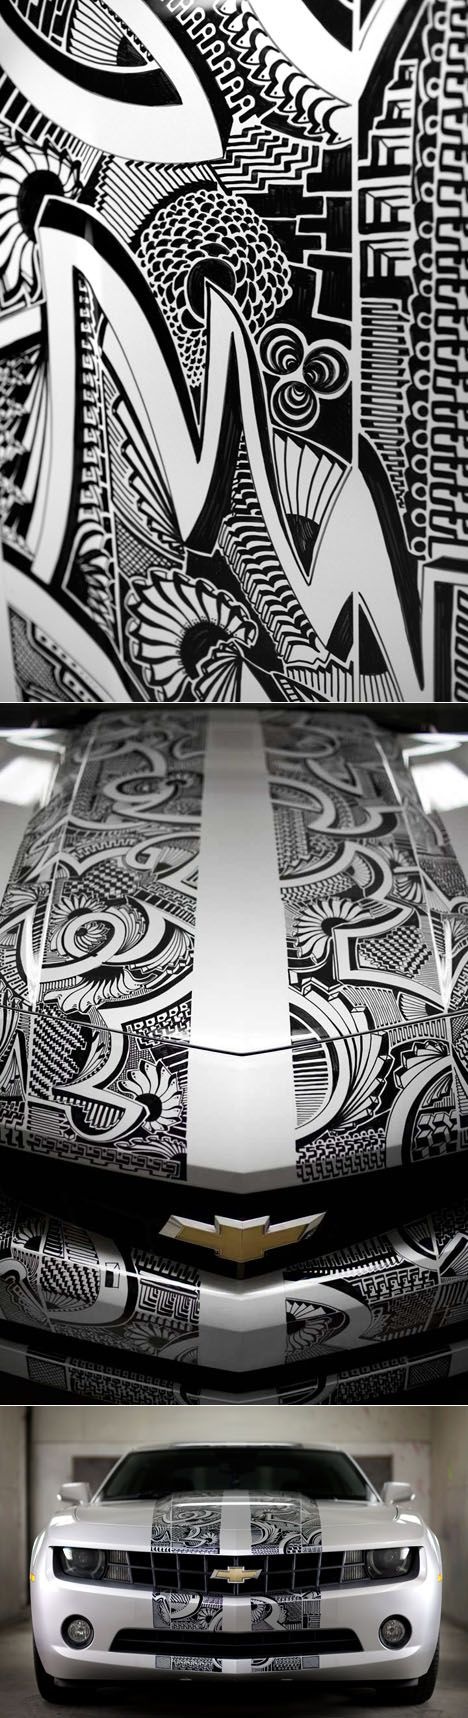 Elaborate illustration on a car body ... done in permanent marker!